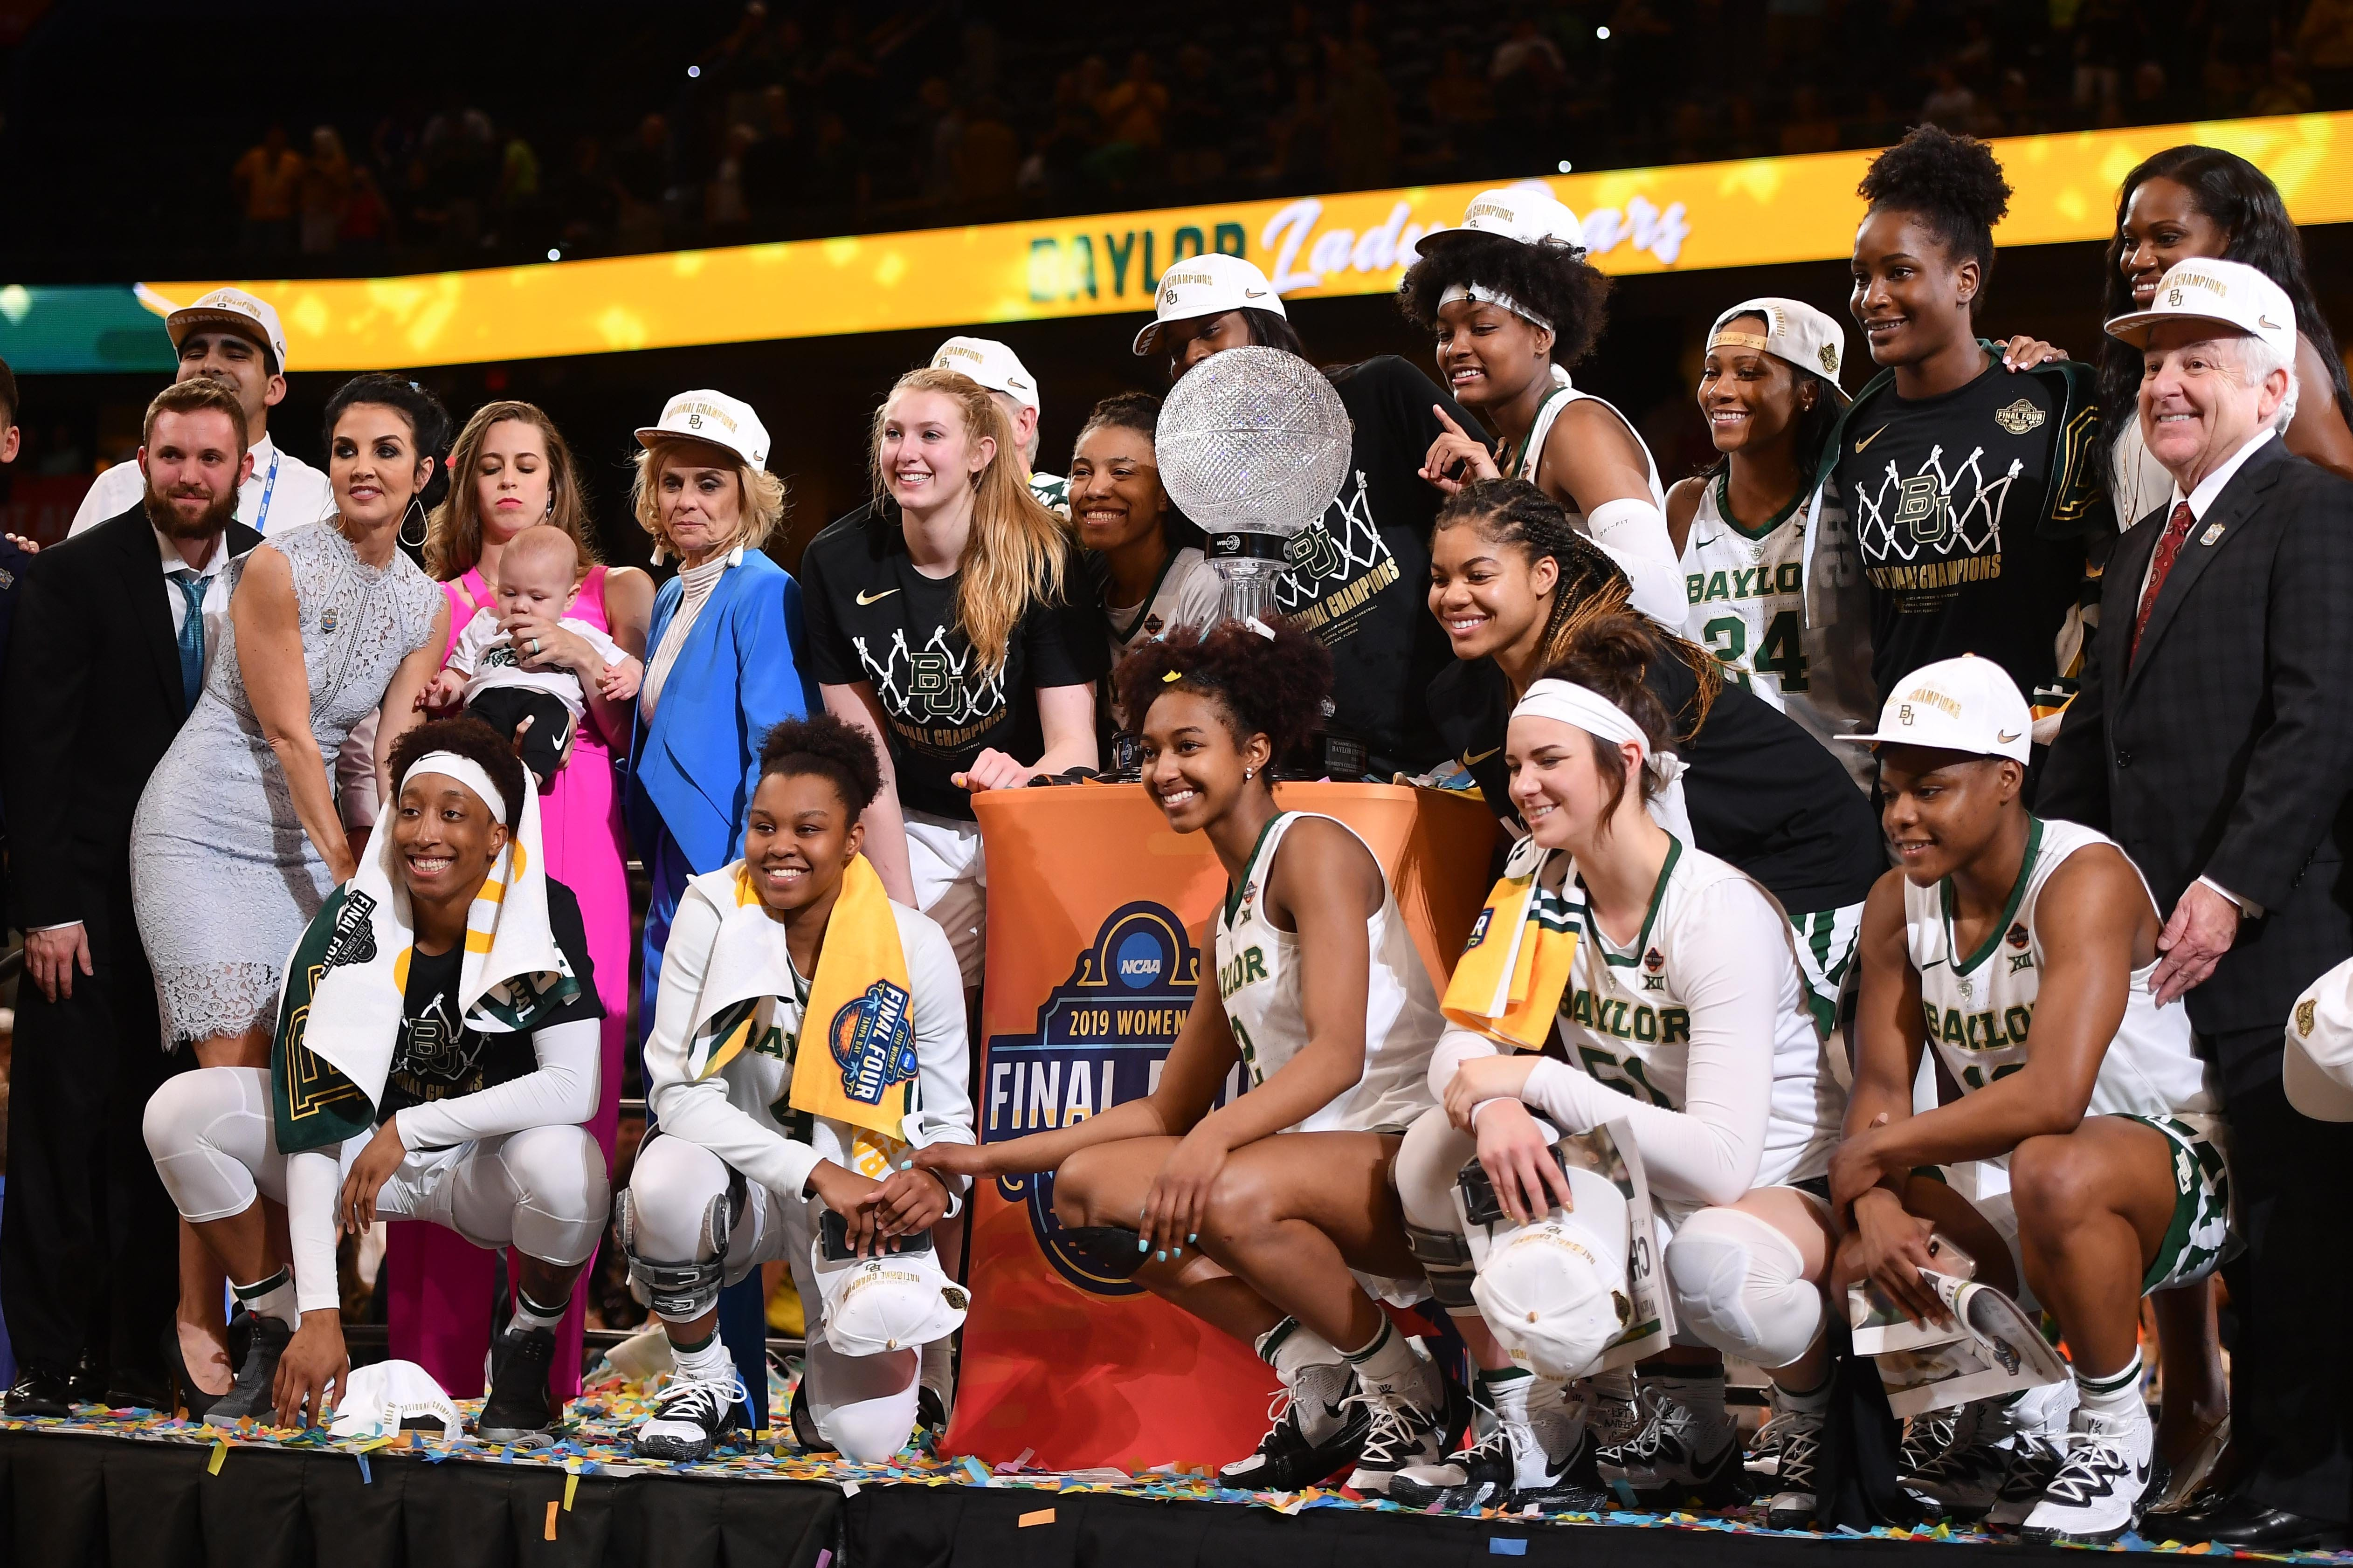 Baylor digs deep to hold off Notre Dame for third women's national championship